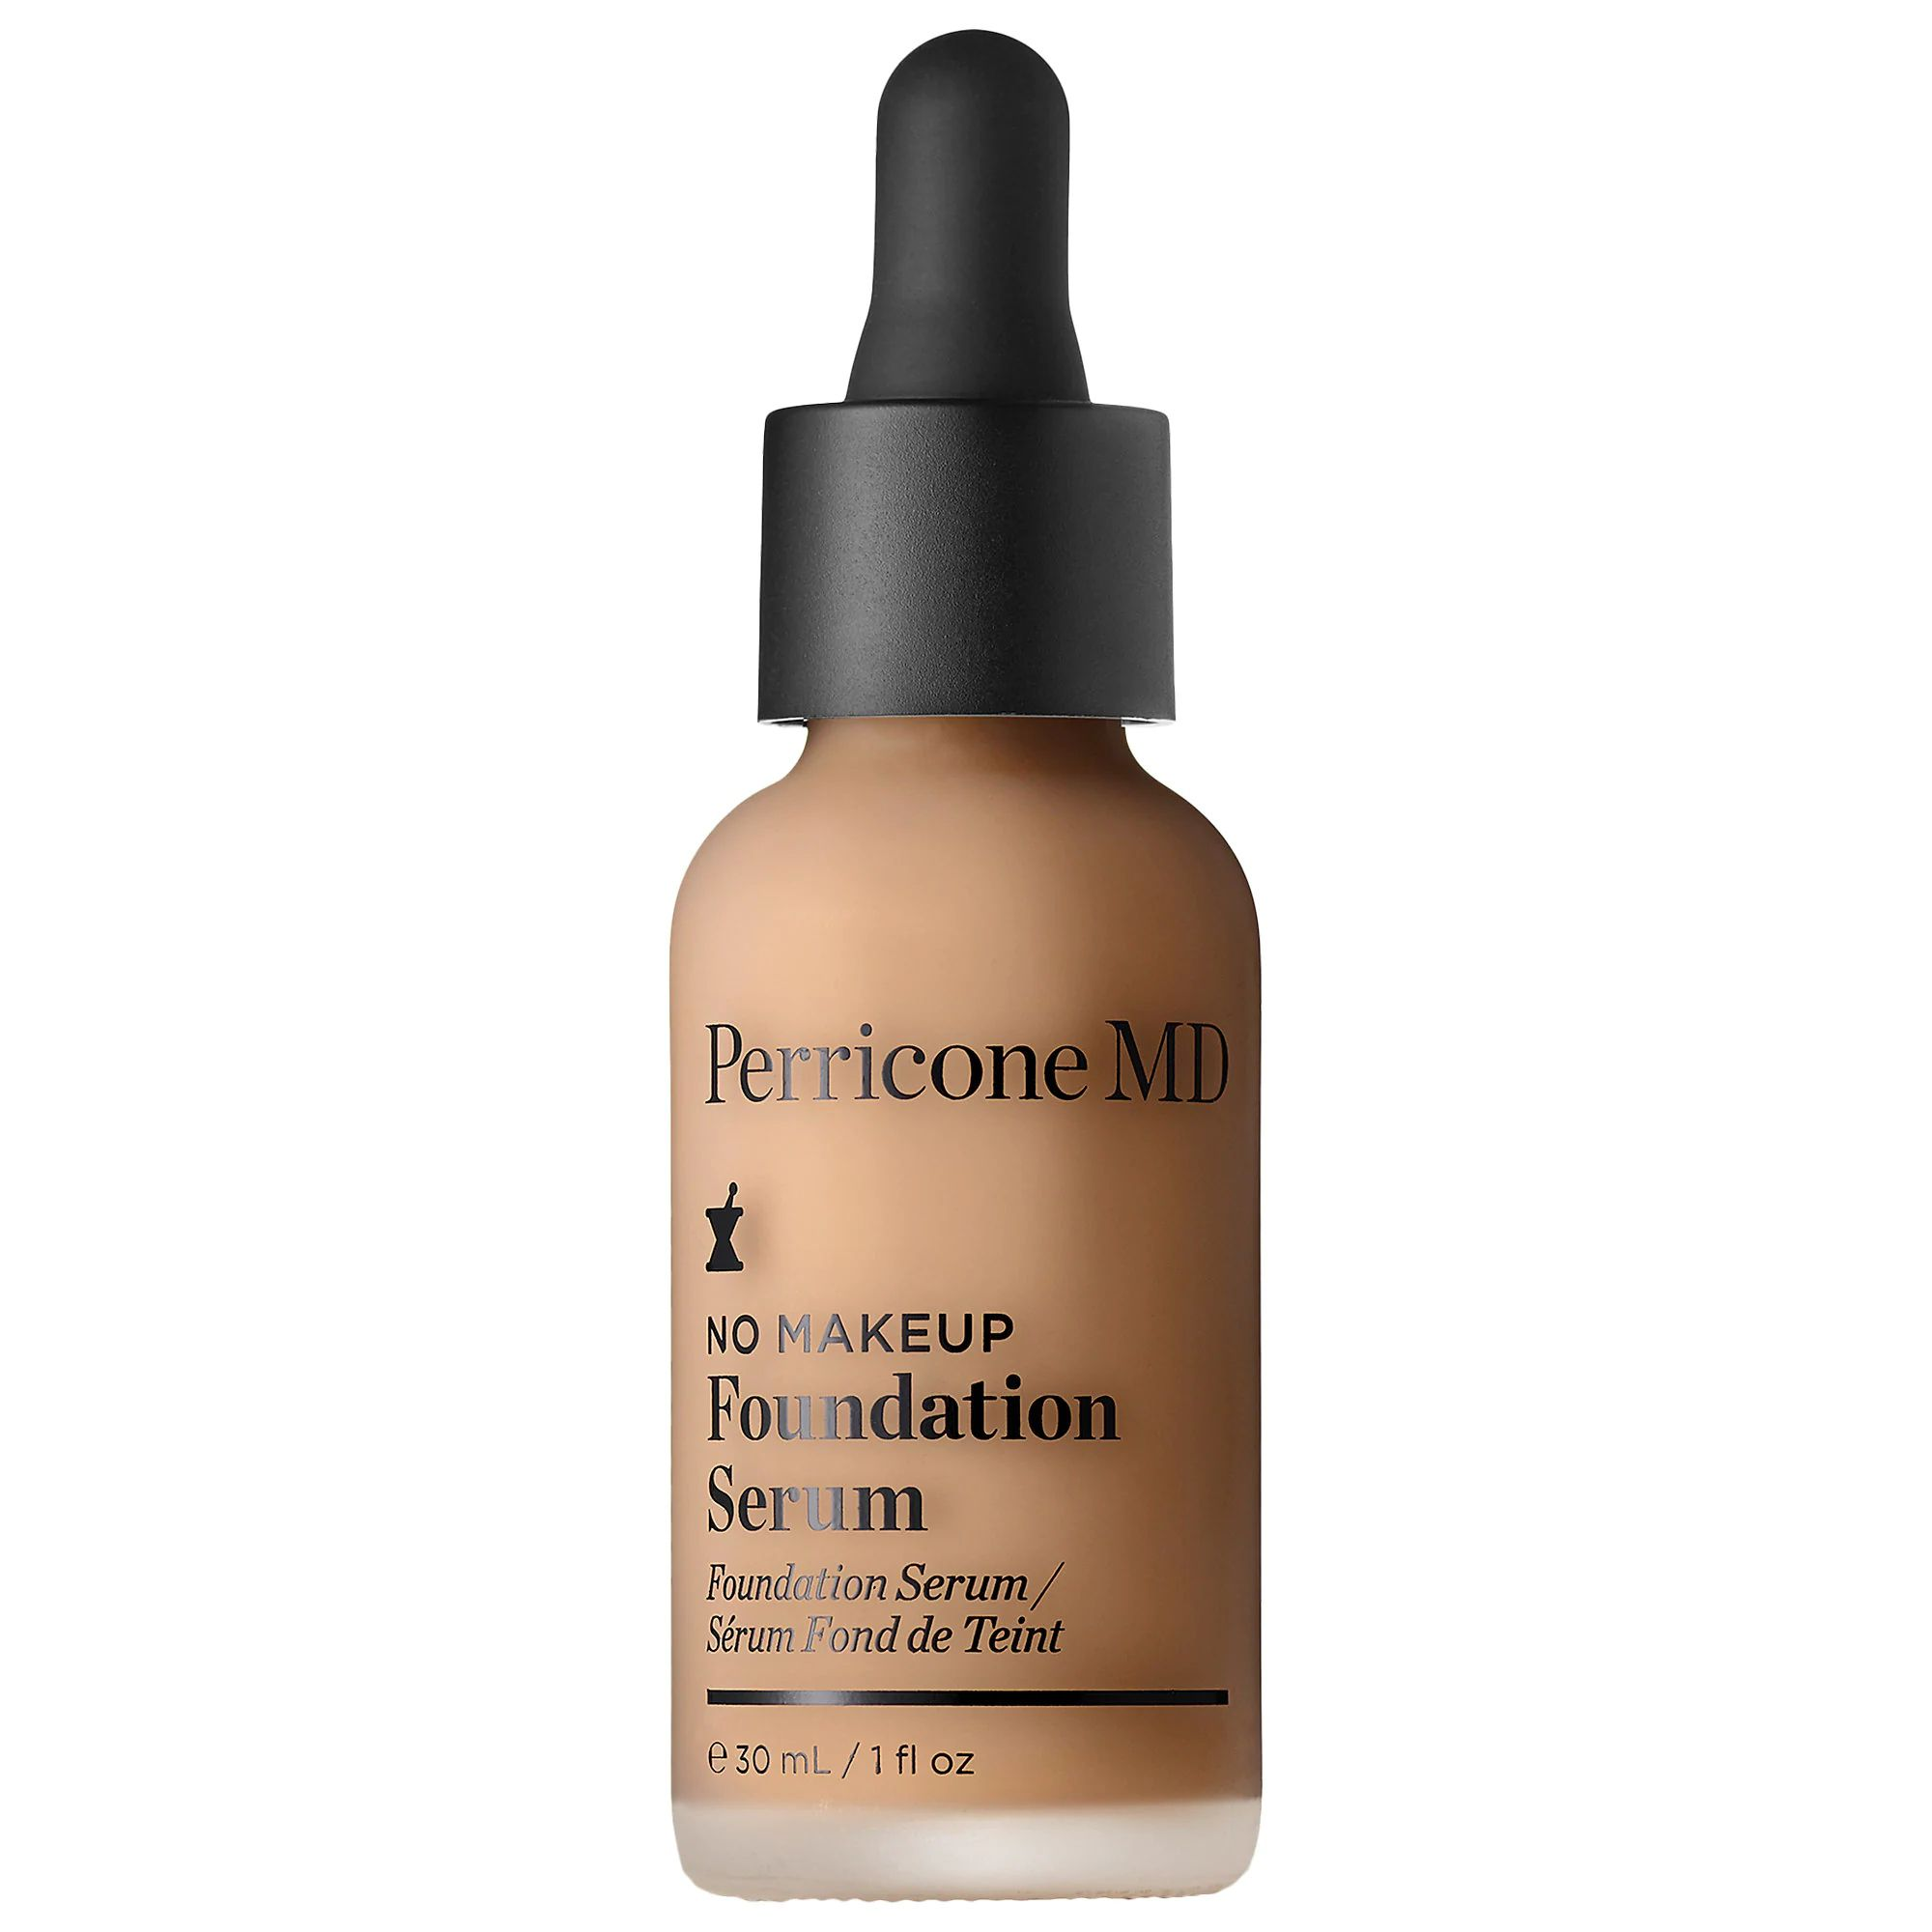 The 7 Best Foundations For Rosacea Of 2021